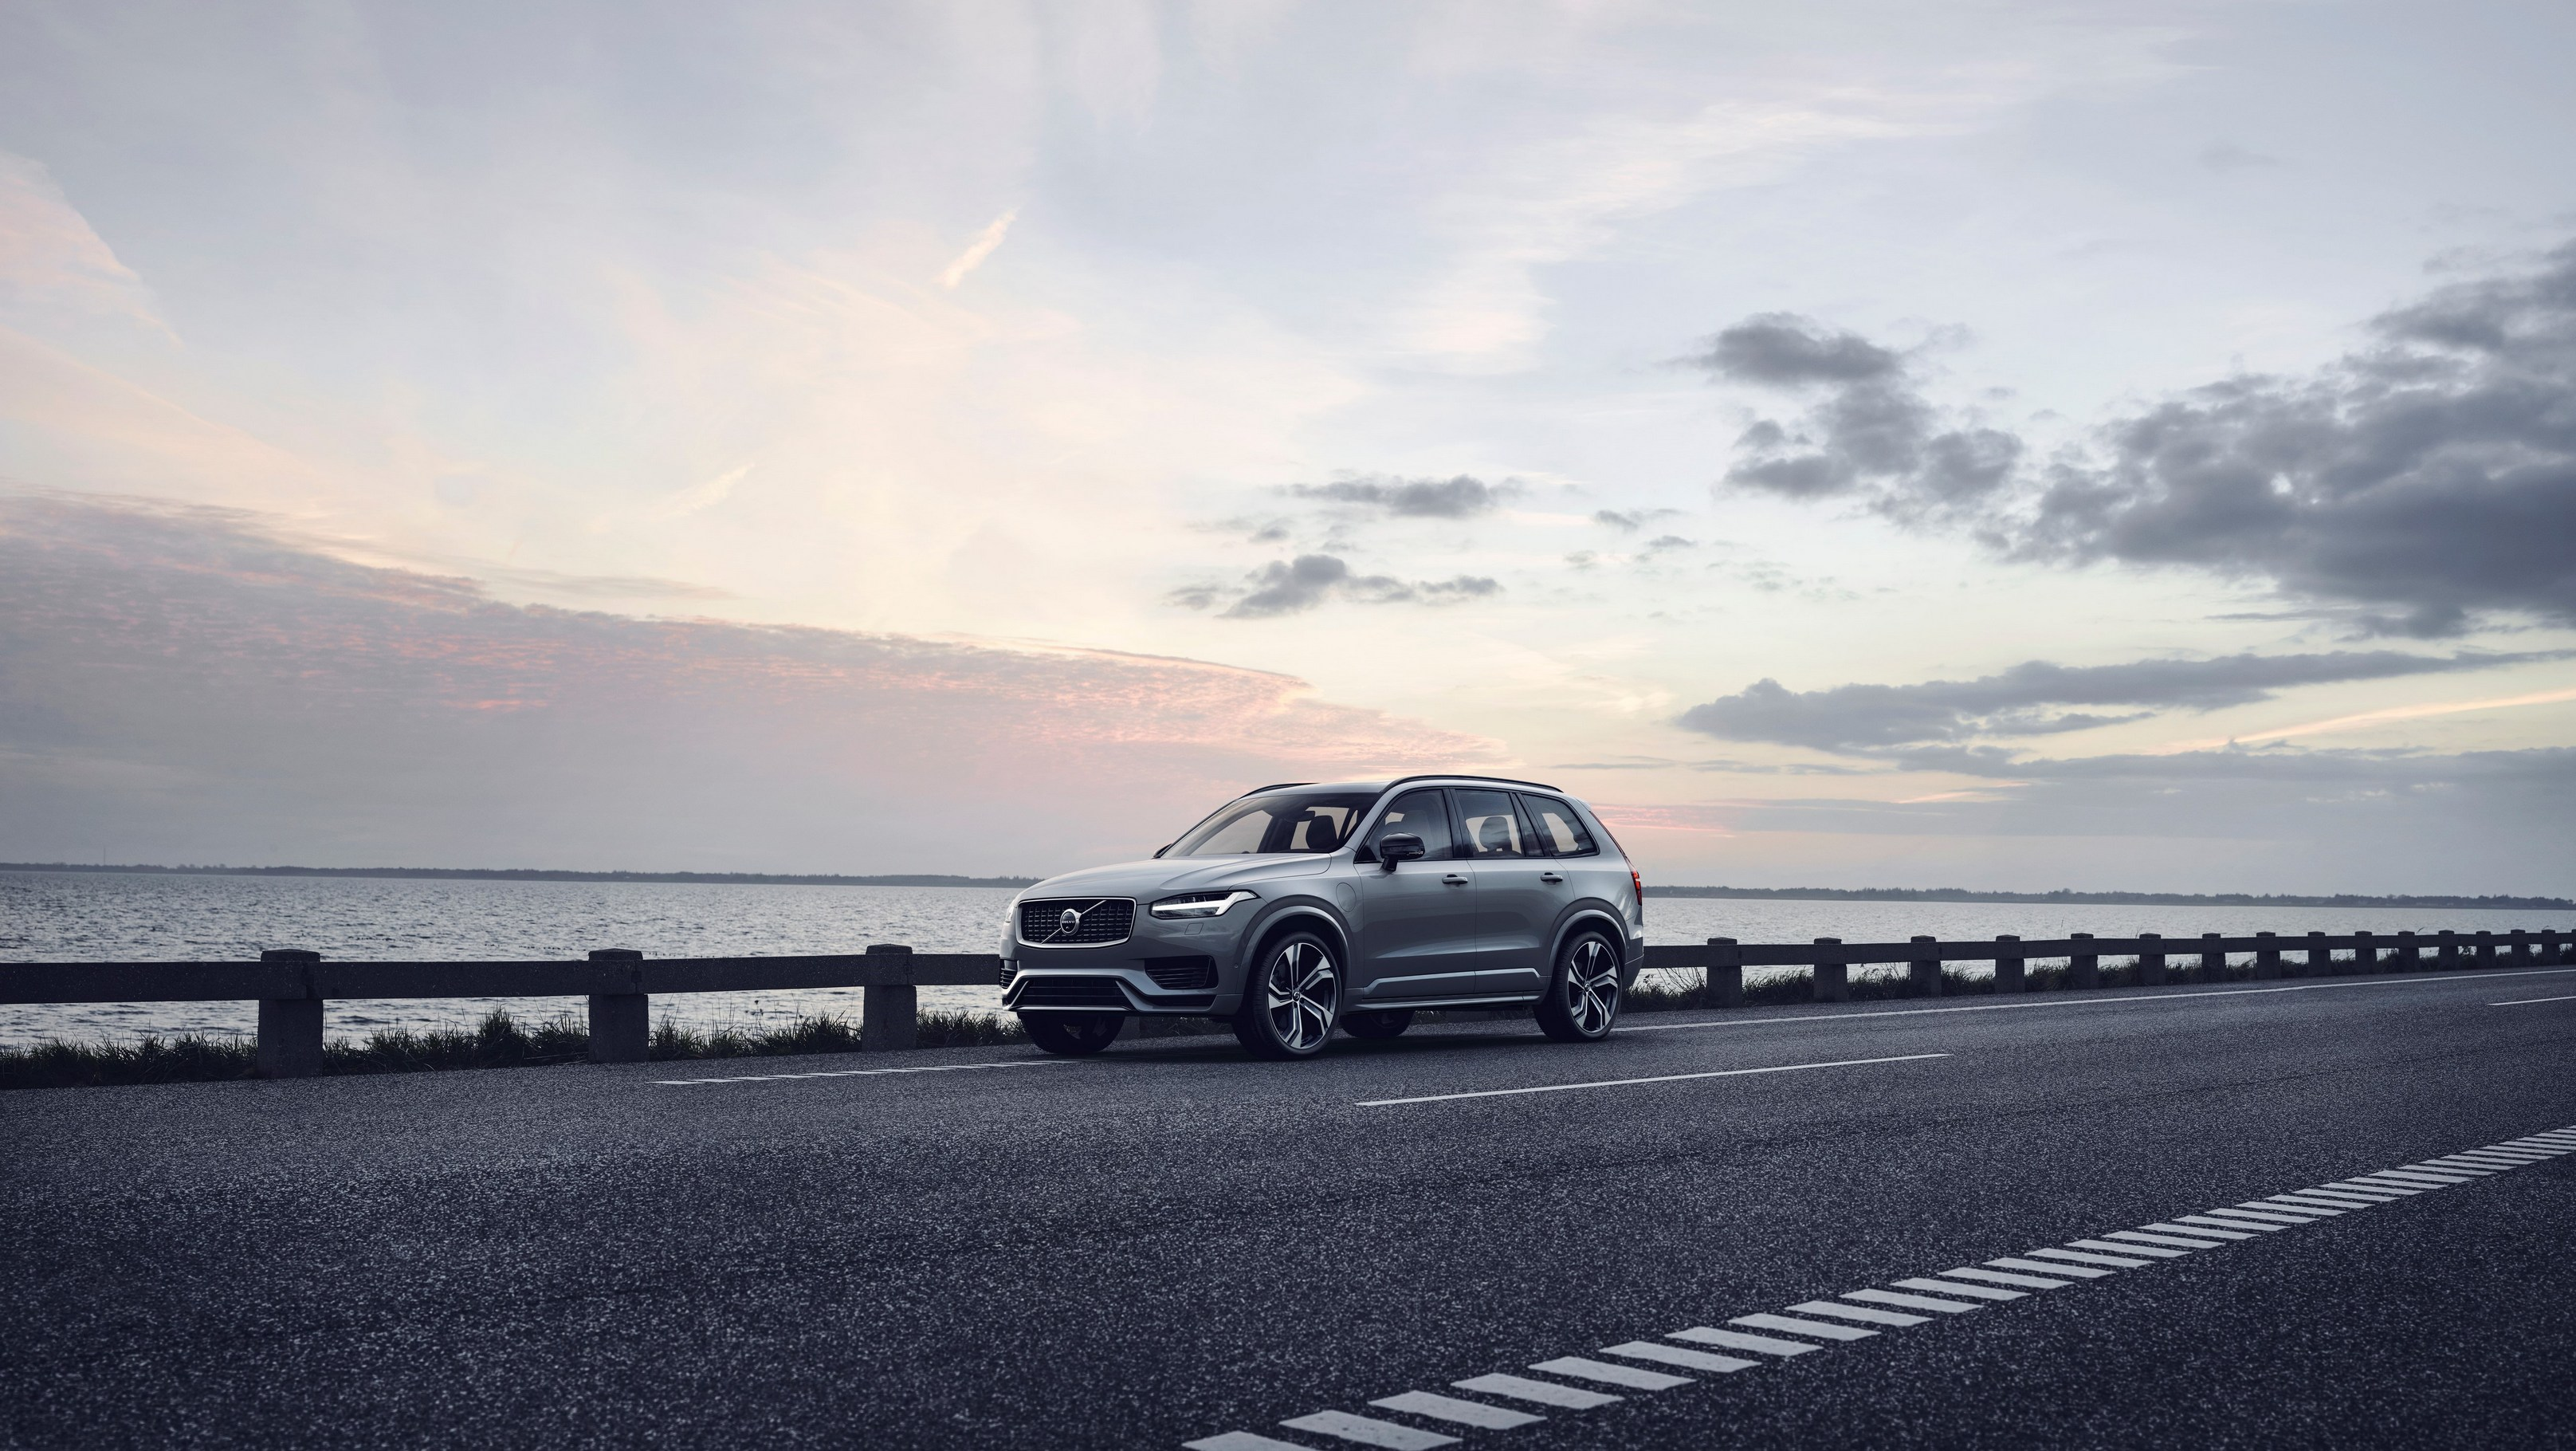 2019 Volvo Xc90 Review An Incredibly Satisfying Everyday Crossover